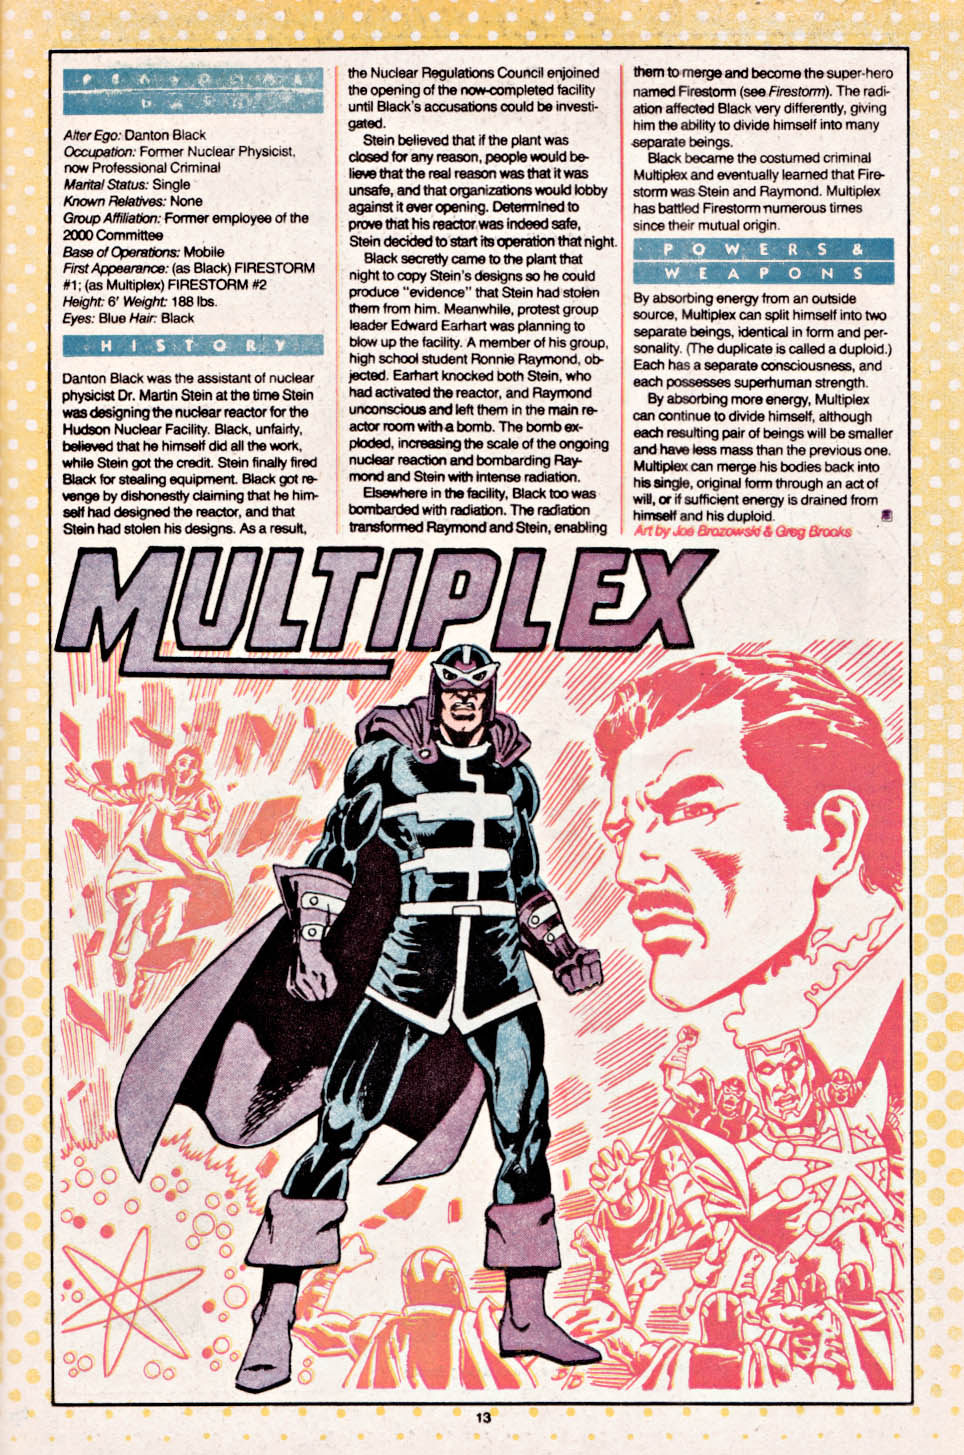 Multiplex Who's Who by Joe Brozowski and Greg Brooks